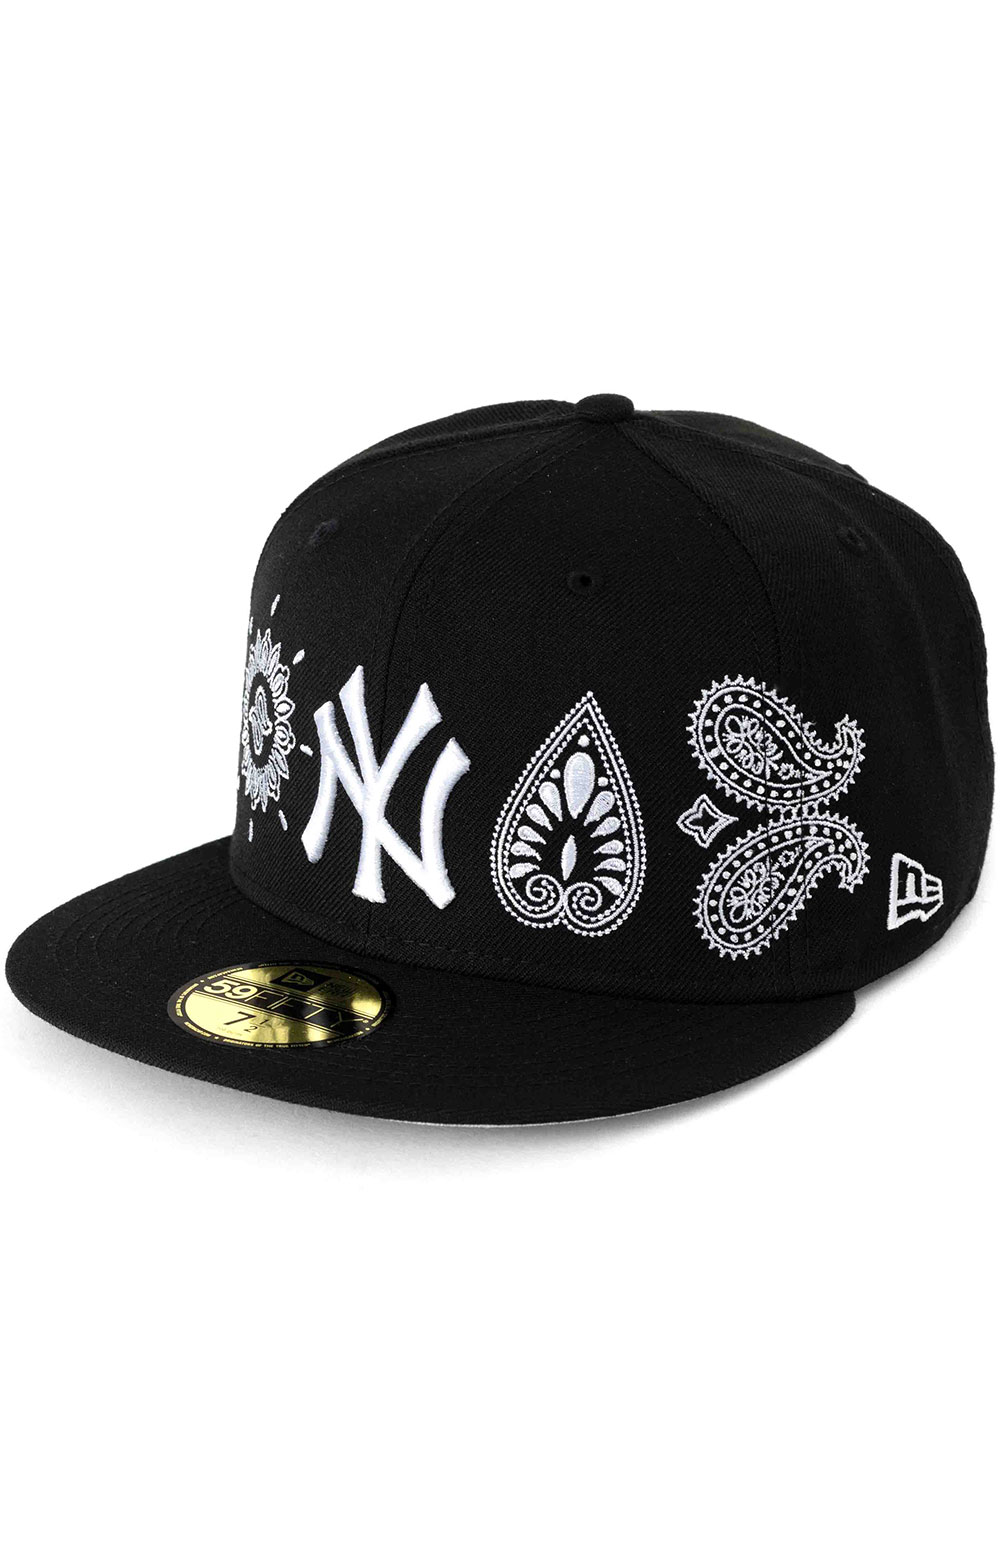 59Fifty New York Yankees Paisley Elements Fitted Hat - Black